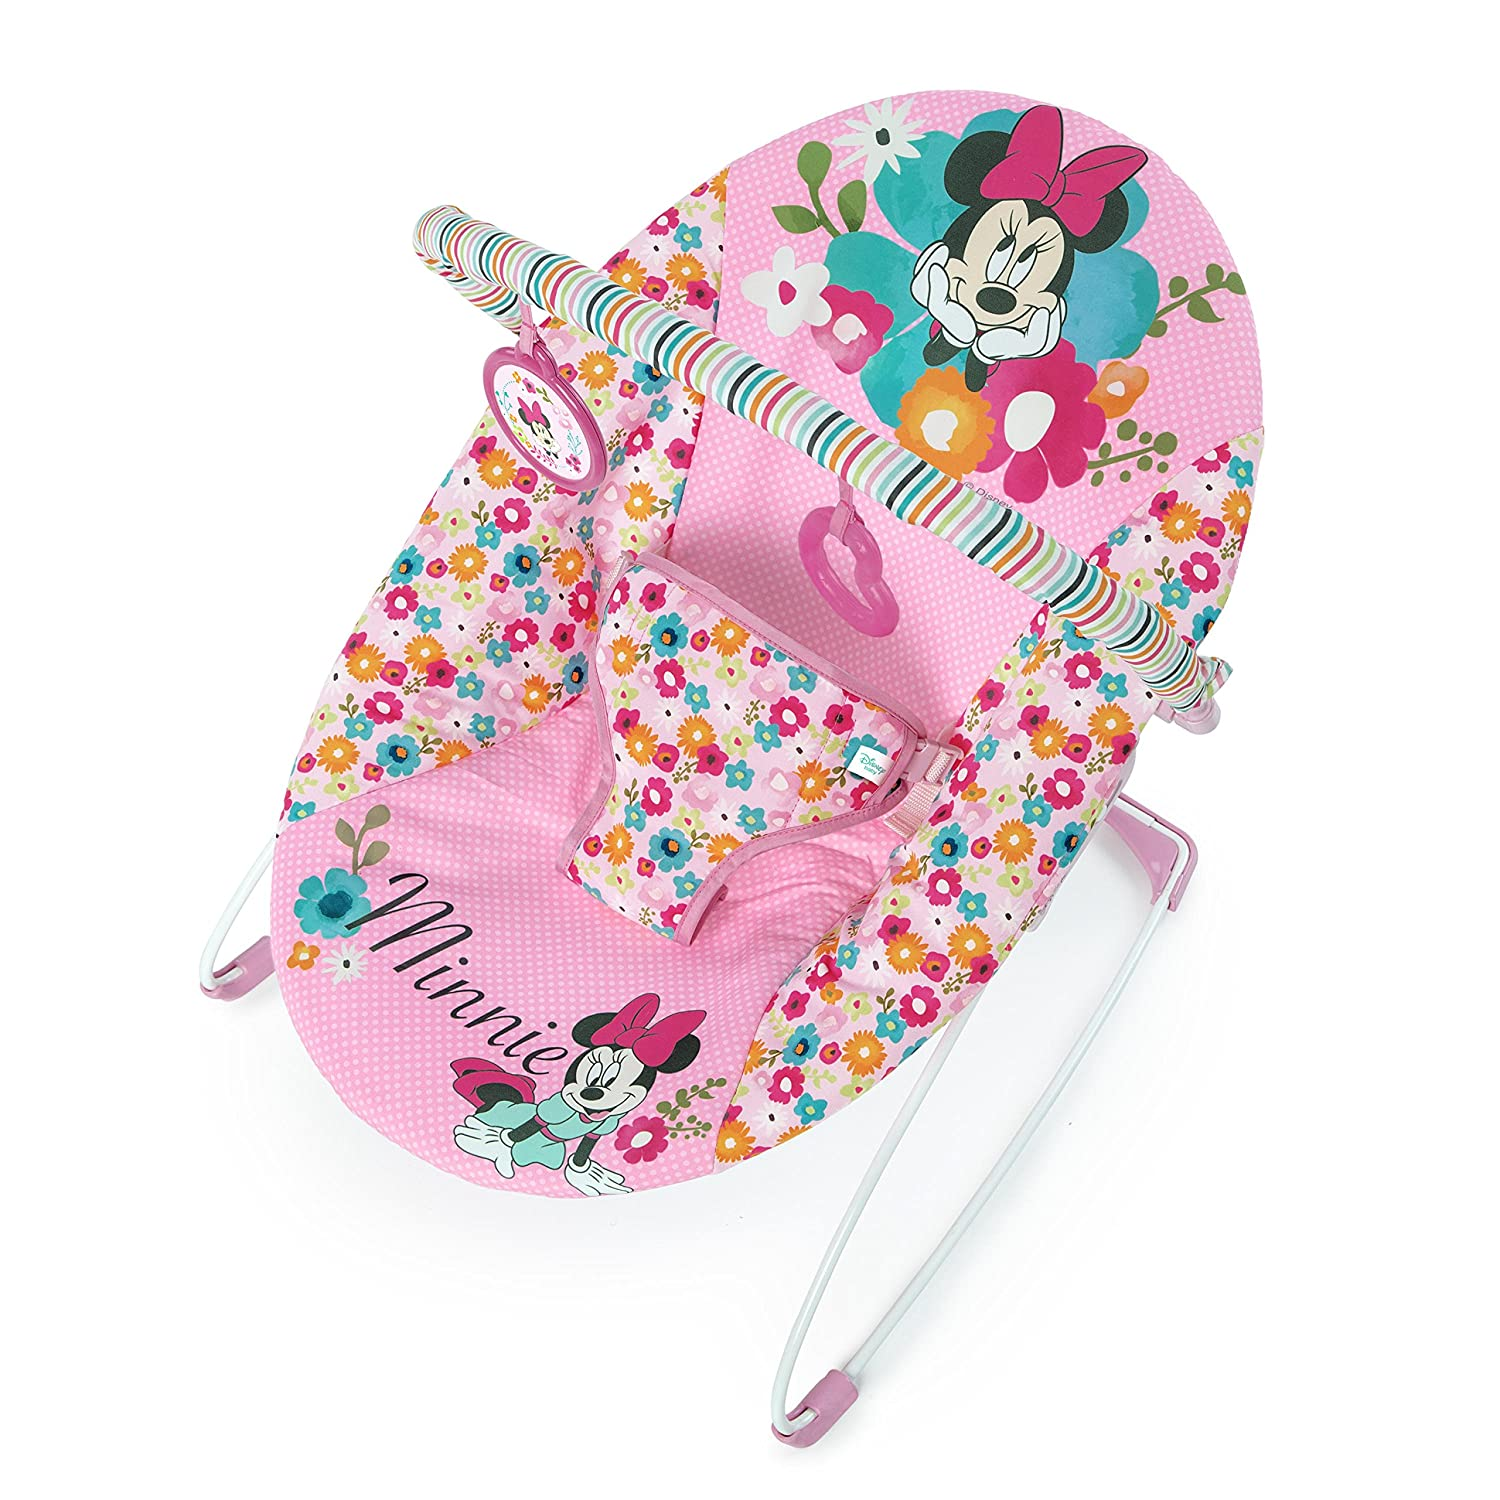 Disney Baby Minnie Mouse Perfect Vibrating Bouncer, Pink Kids II - (Carson CA) 11509-4-W11